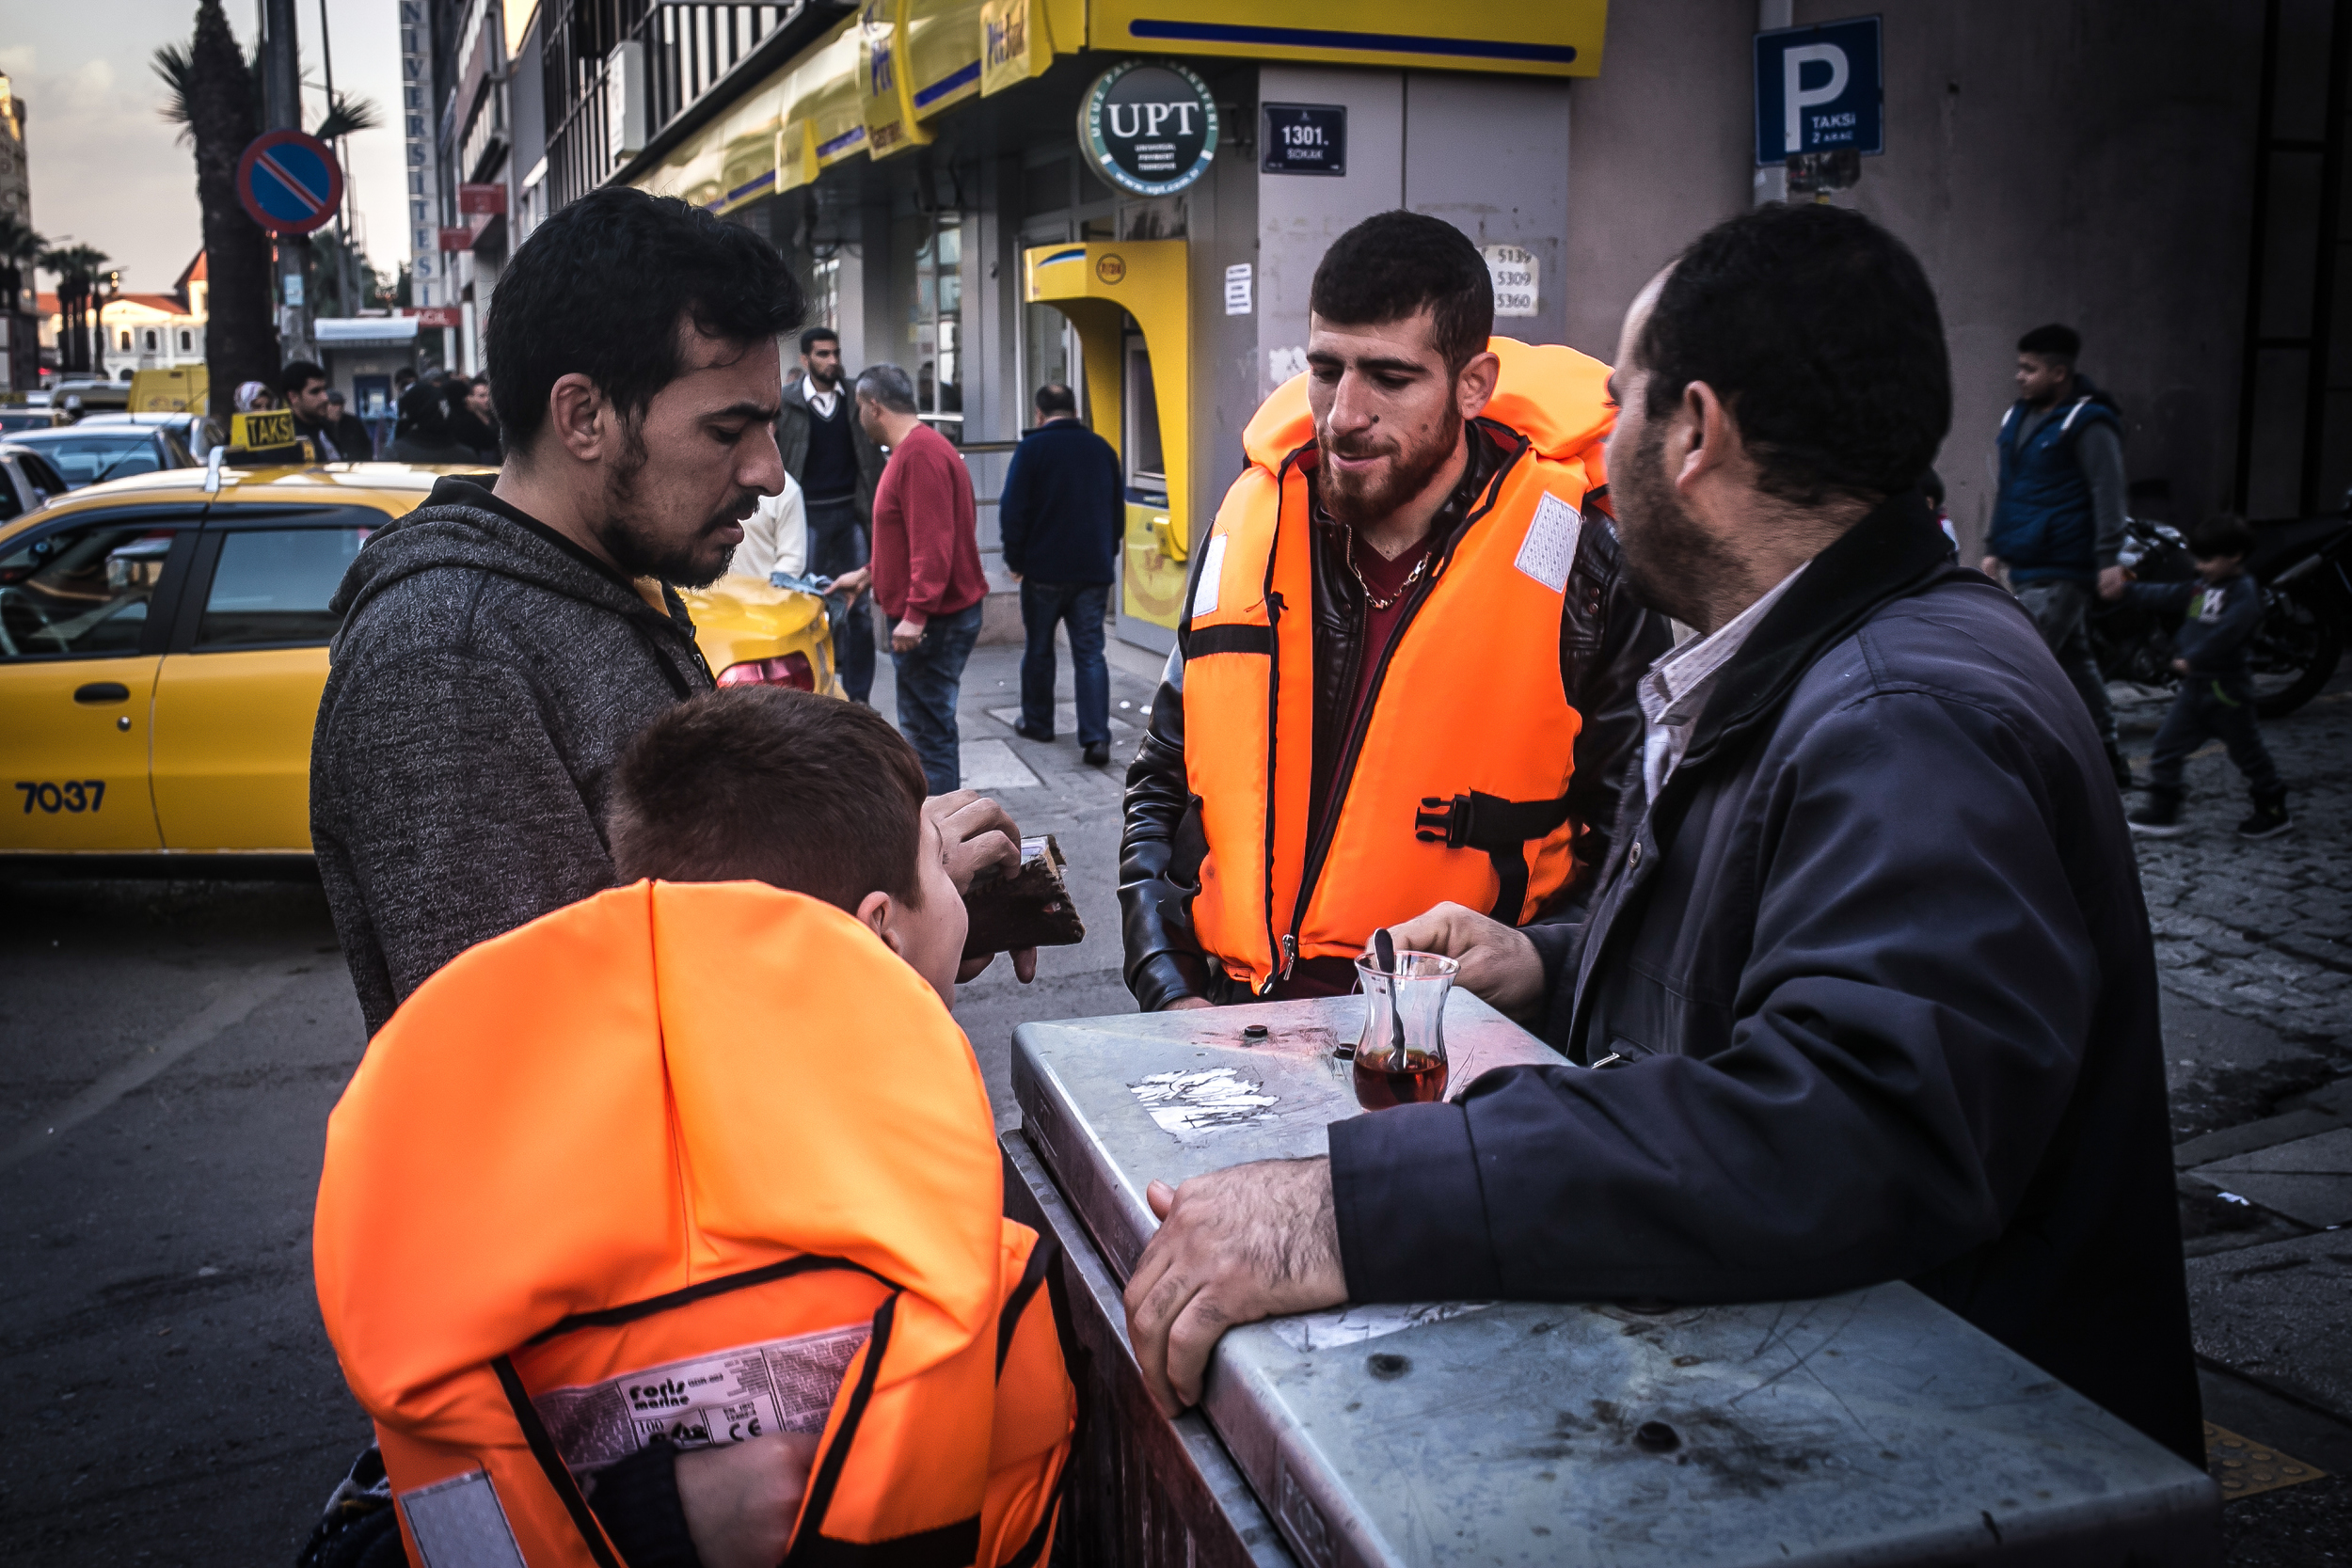 A Syrian refugee buys lifejackets in the streets of Basmane